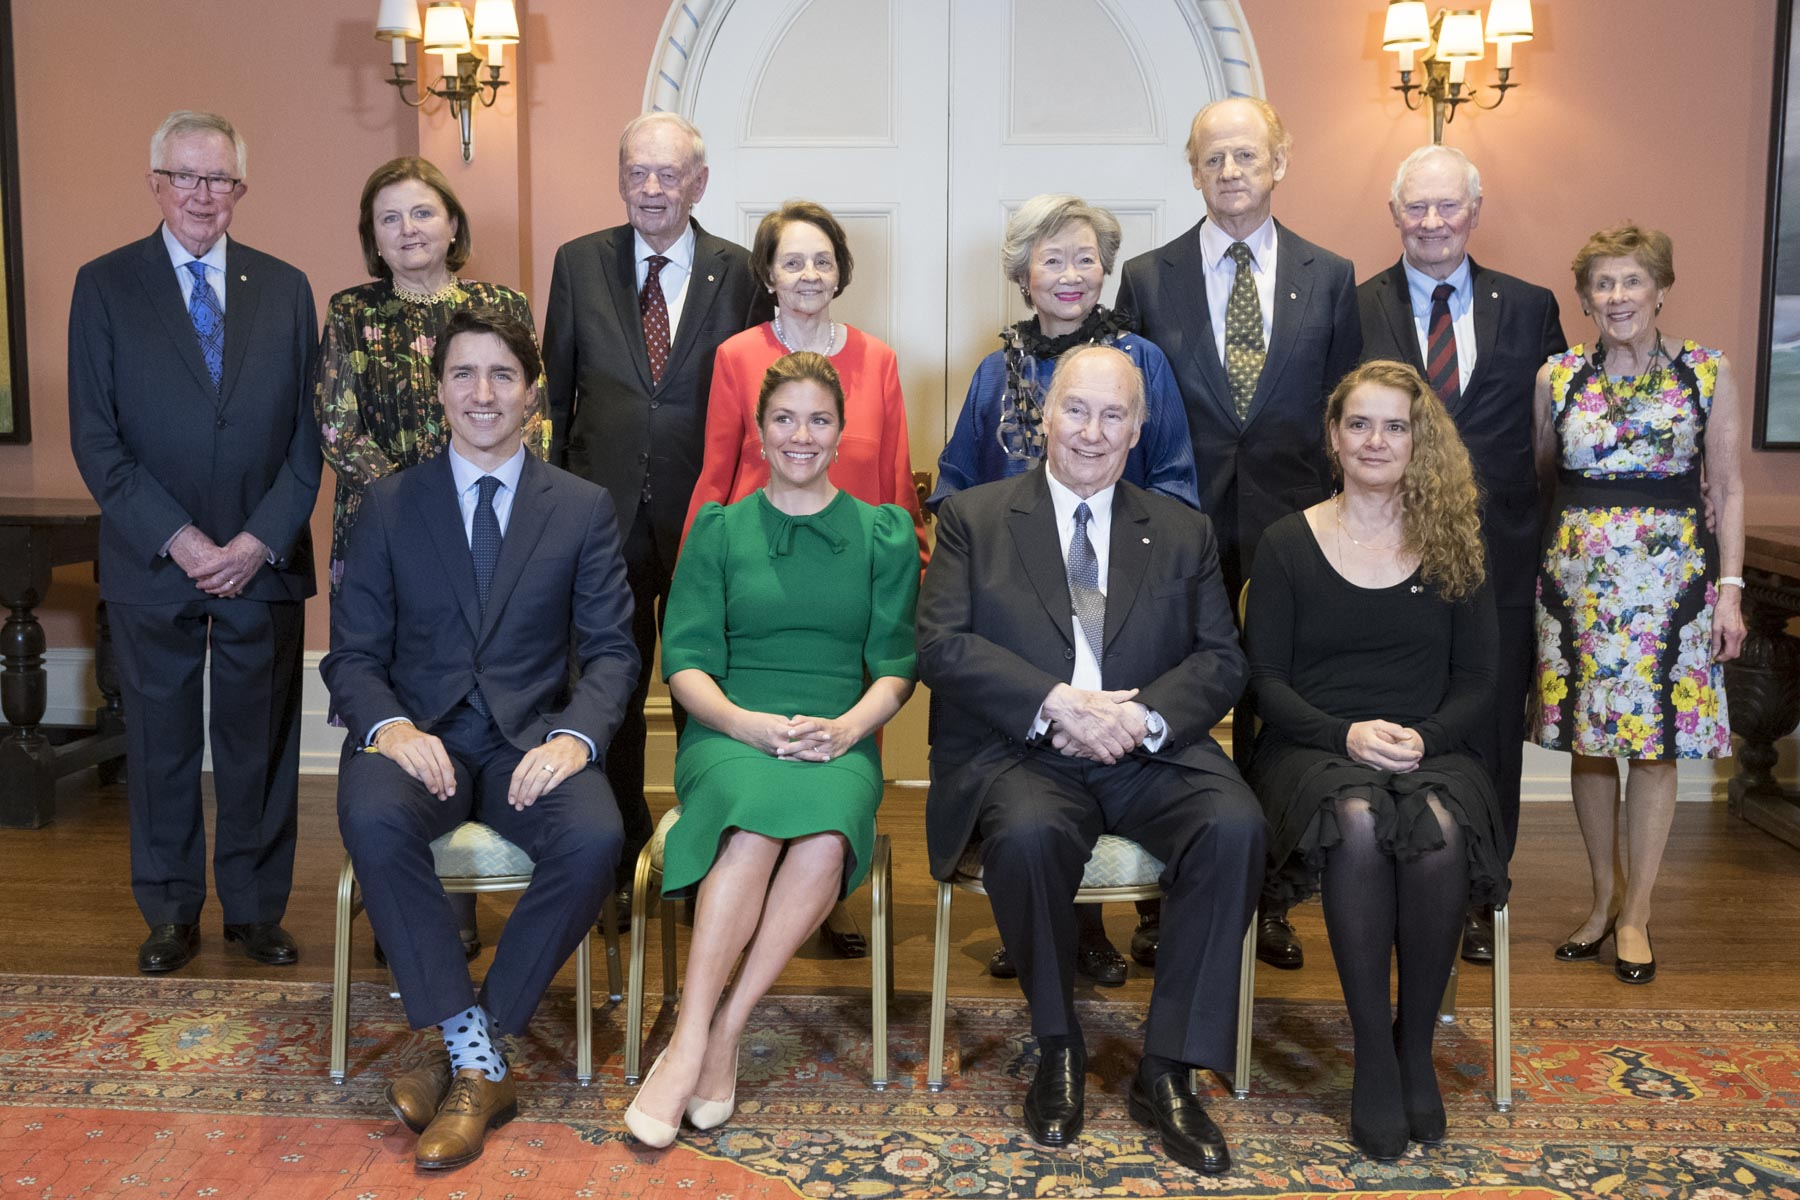 Canadians leaders who, over the last 60 years, have worked closely with the Aga Khan and his community were in attendance: (first row from right to left) Her Excellency, His Highness, Sophie Grégoire-Trudeau, Prime Minister Justin Trudeau, (back row from left to right): Joe Clarke, Maureen McTeer, Jean Chrétien, Aline Chrétien, Adrienne Clarkson, John Ralston Saul, David Johnston and Sharon Johnston.